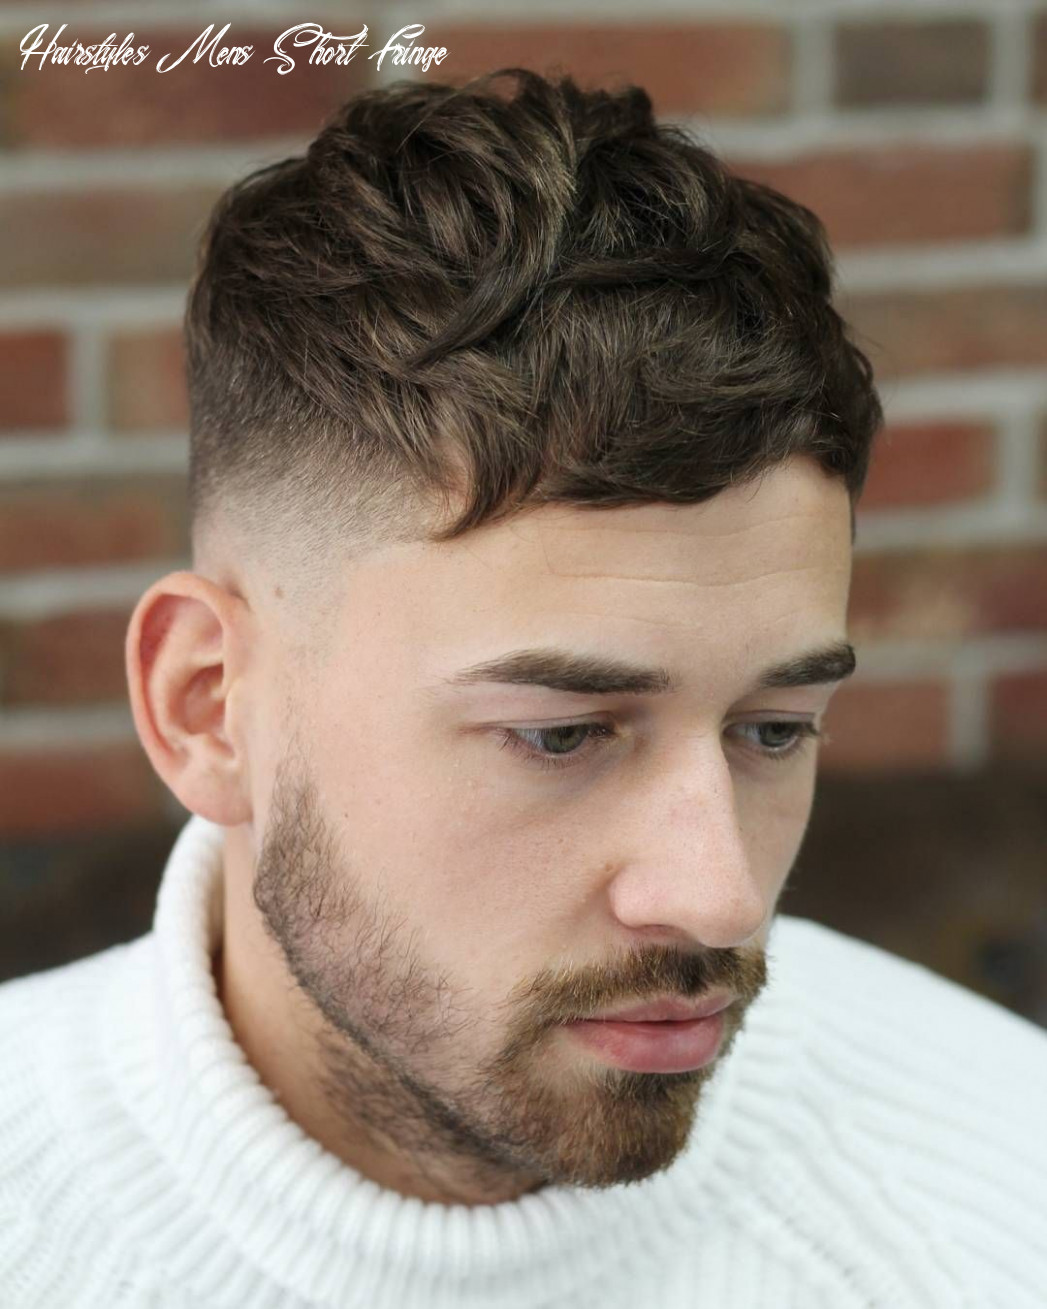 10 cool short haircuts hairstyles for men (10 update) | new